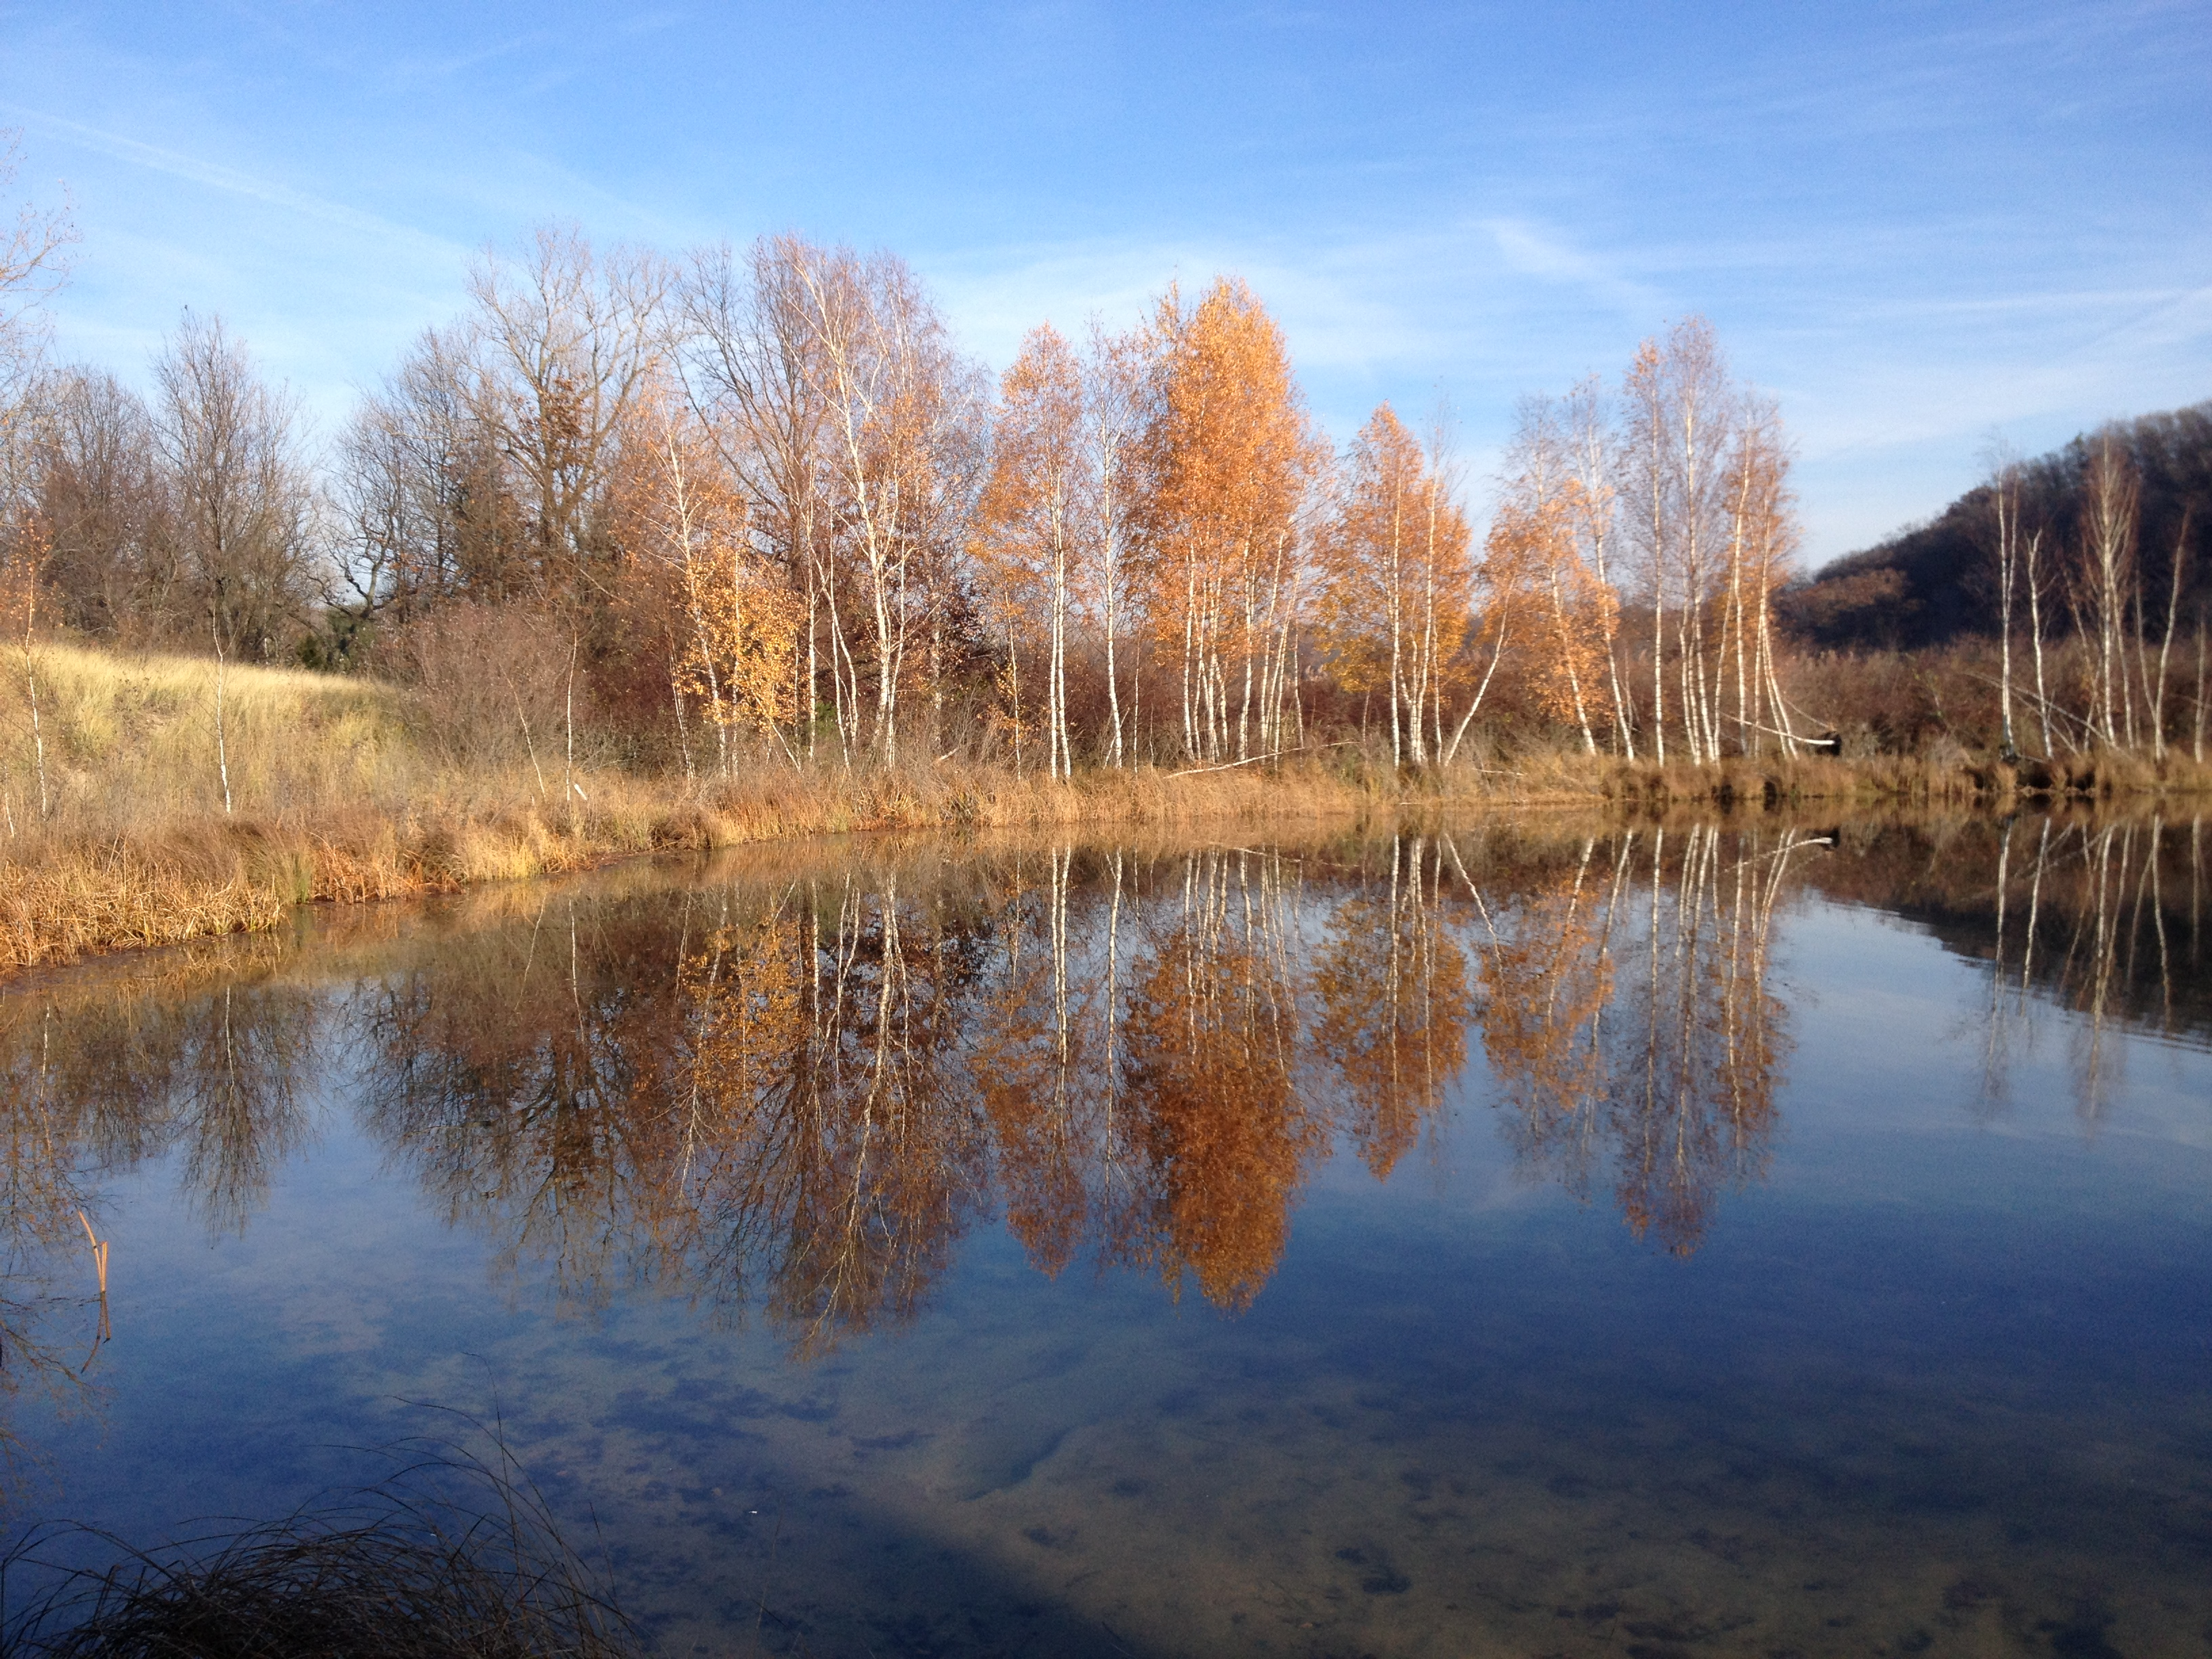 View across a section of water with the changing leaves of trees being mirrored in the water underneath a blue slightly cloudy sky.